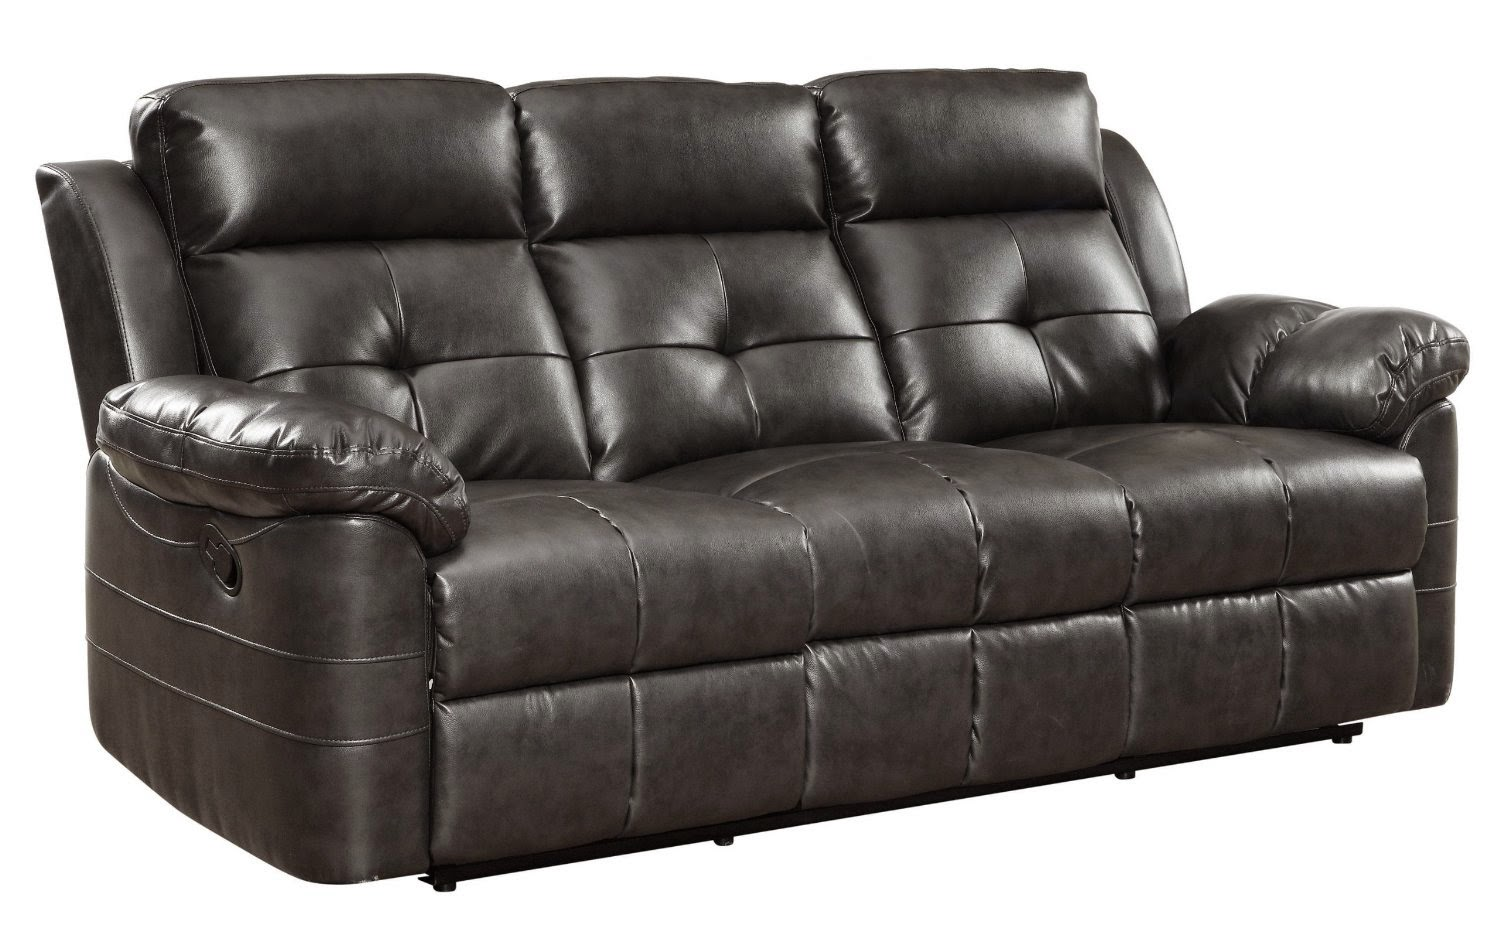 The best reclining sofas ratings reviews curved leather reclining sofa set Leather loveseat recliners